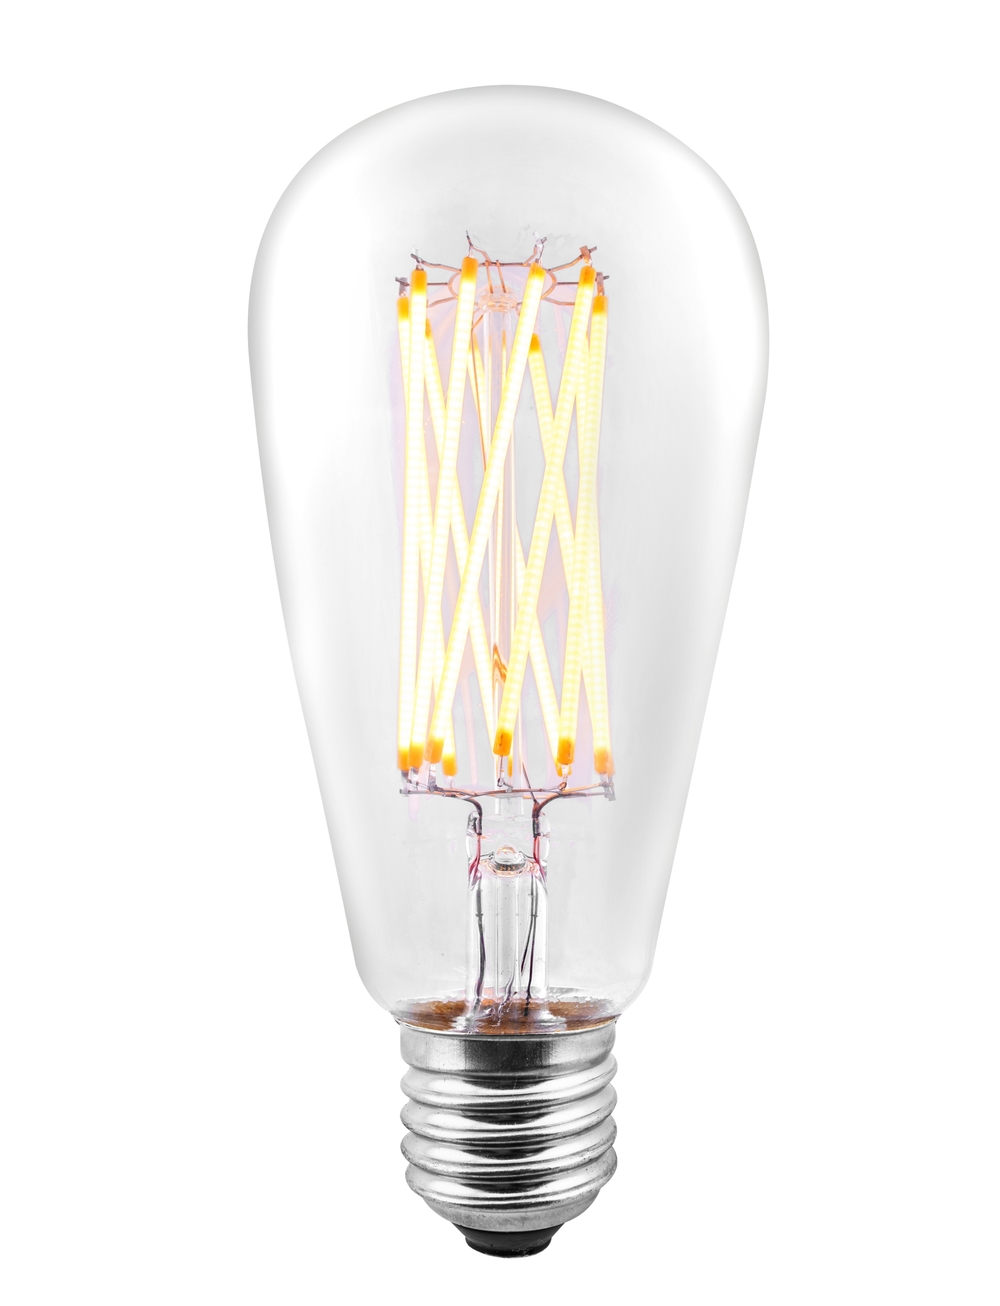 LED Antique X-Filament Bulb Edison Style ST64 8 Watt 75W Equivalent 2700K Vintage Warm White ...